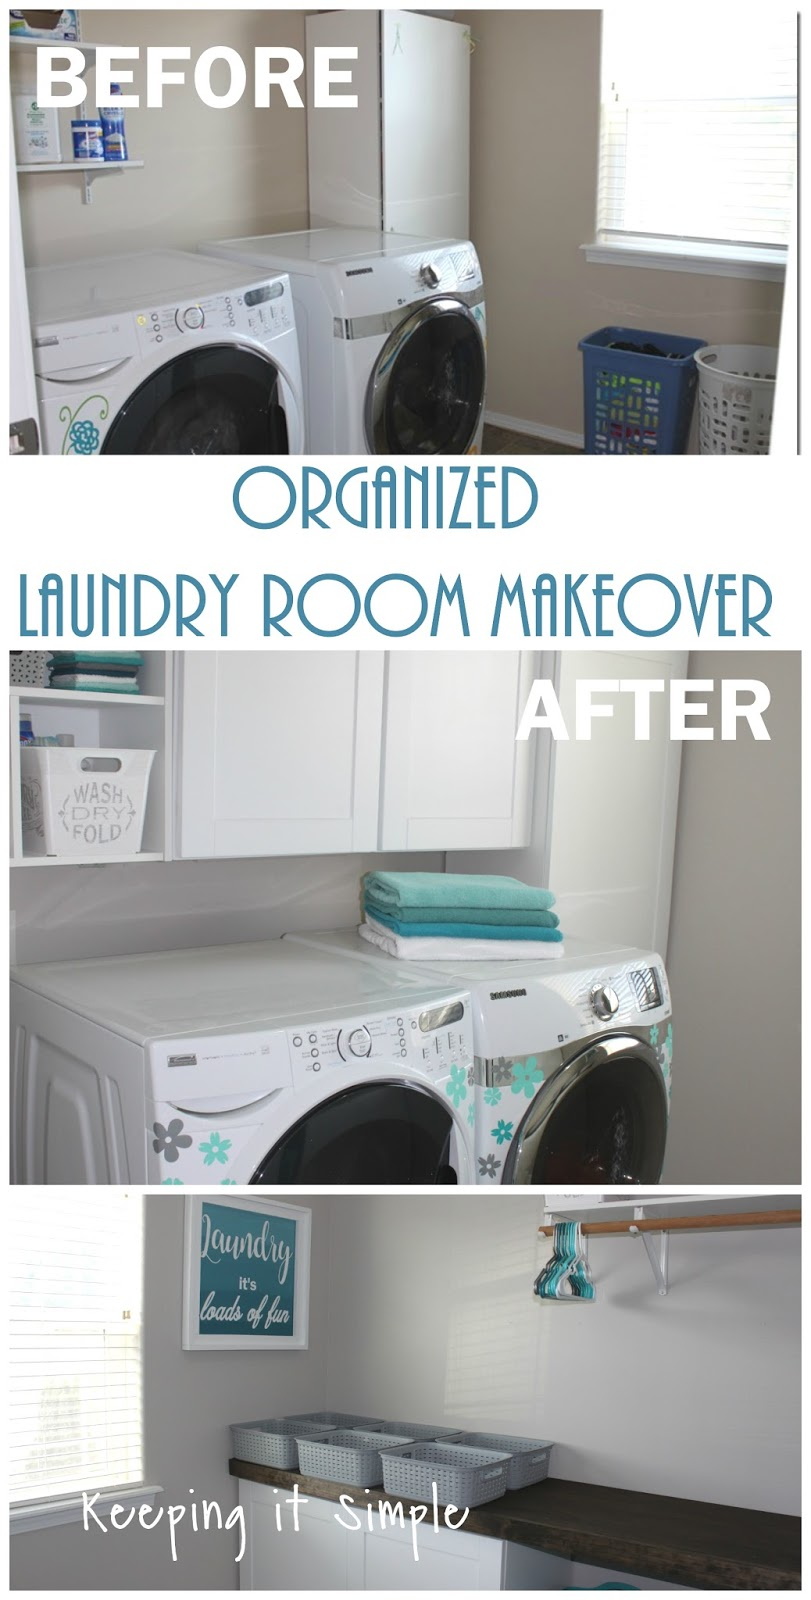 Keeping it Simple: Organized Laundry Room Makeover